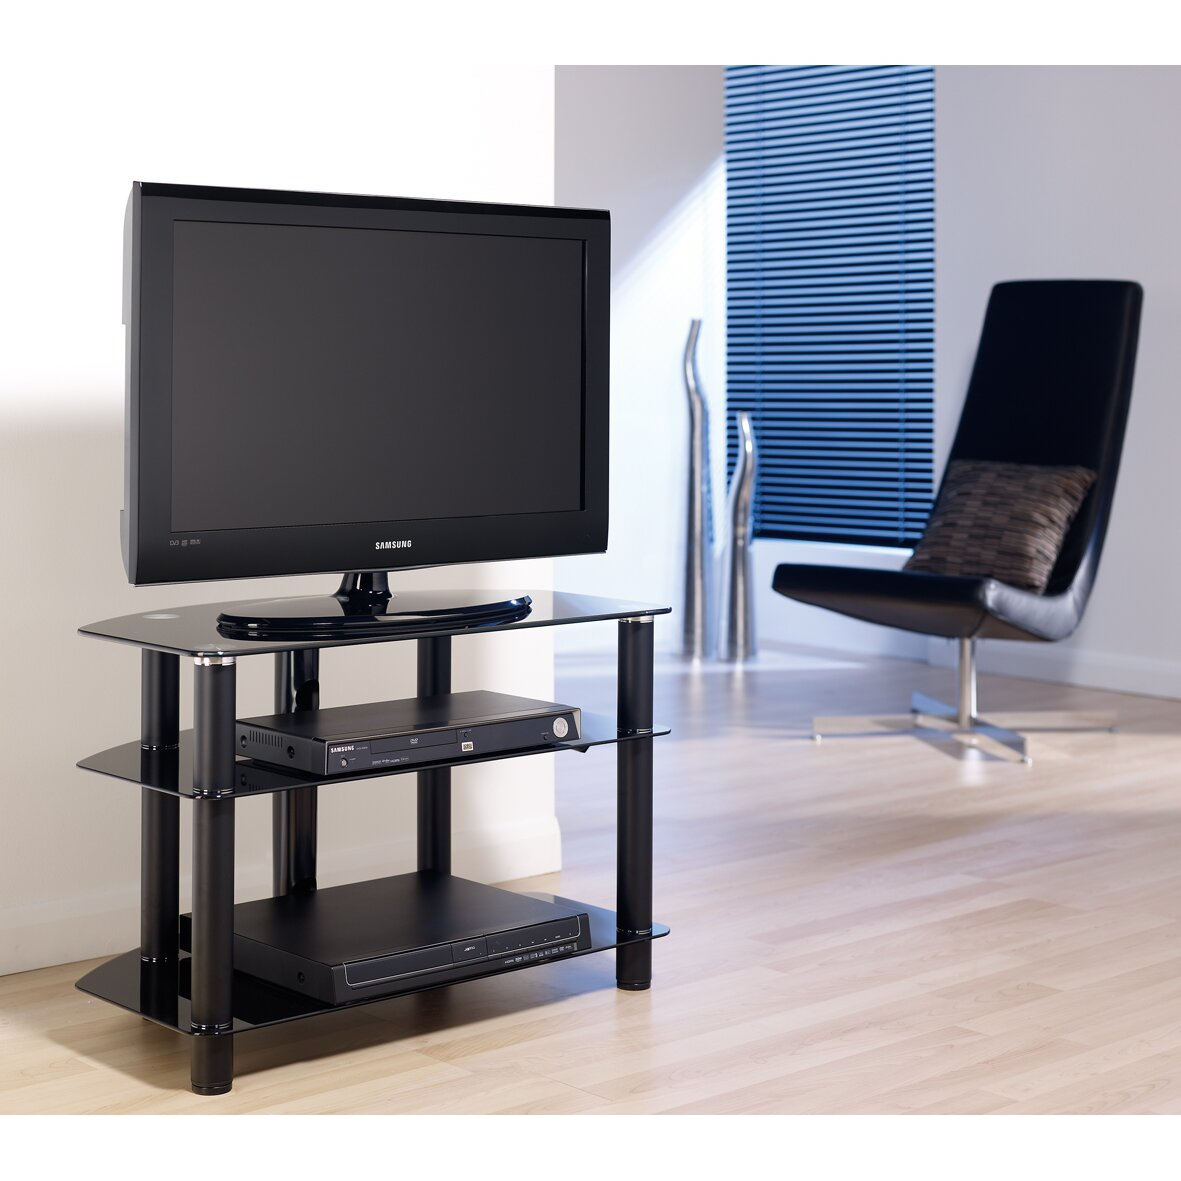 "Tv Bench: Techlink Dais TV Bench For TVs Up To 60"" & Reviews"